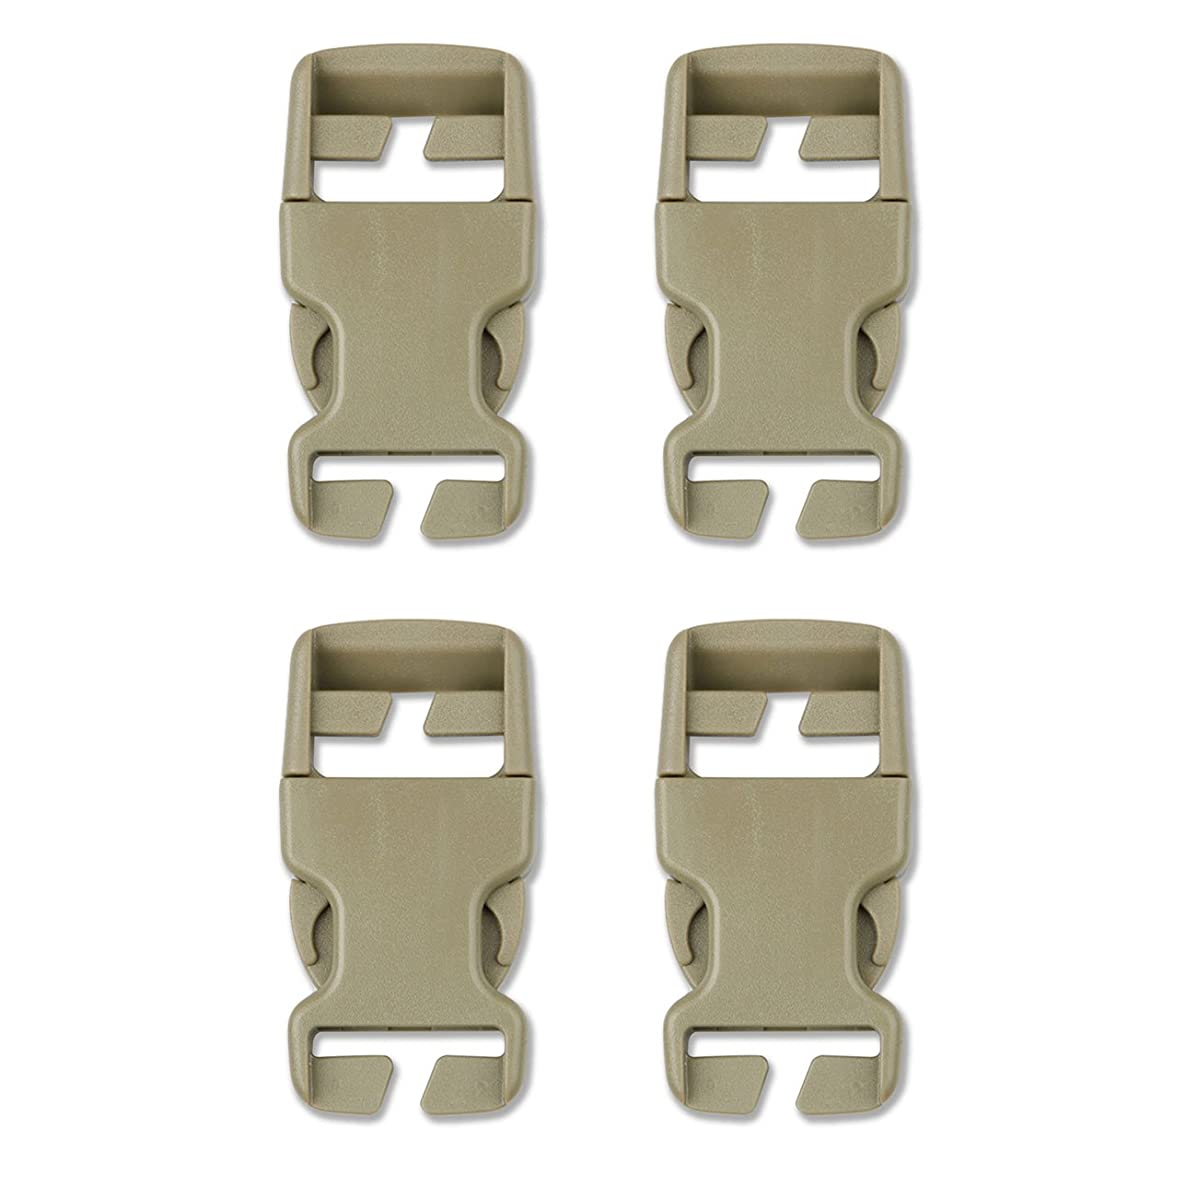 DYZD Multi-Size Plastic Buckle Repair Kit Quick Release Buckles No Sewing Required Buckles for Backpack Bag (4pcs Khaki,25 mm)